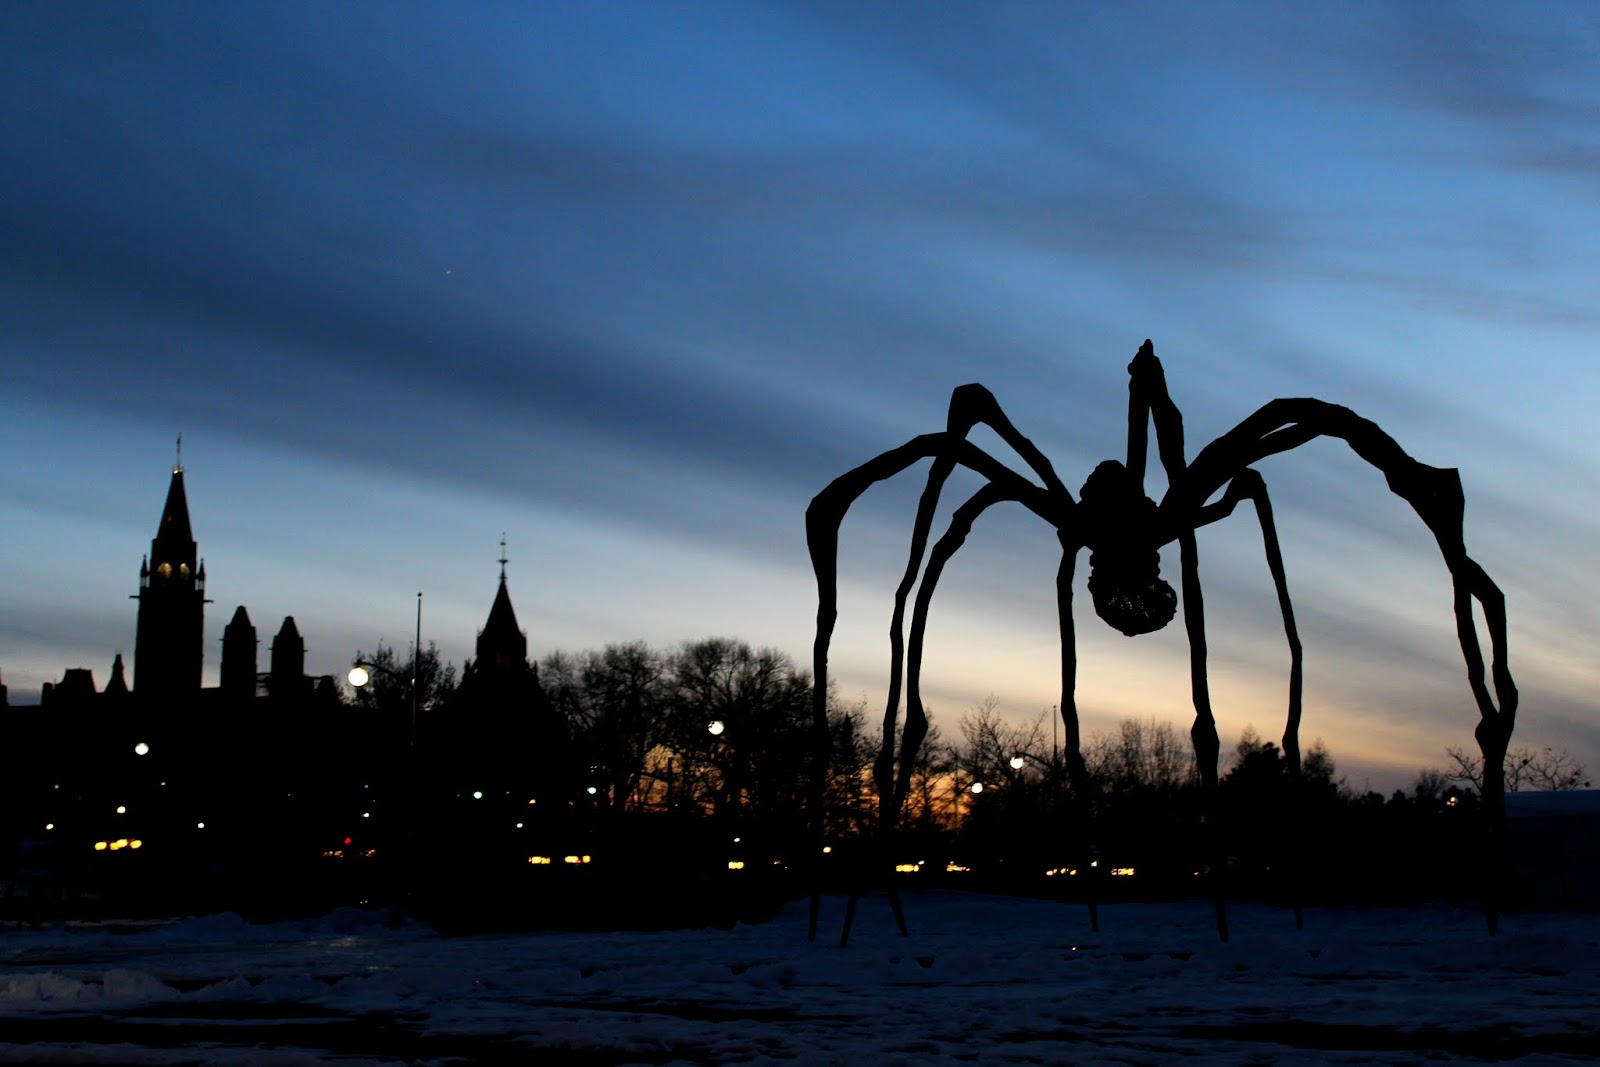 Our favourite venue is guarded by a giant Arachnid